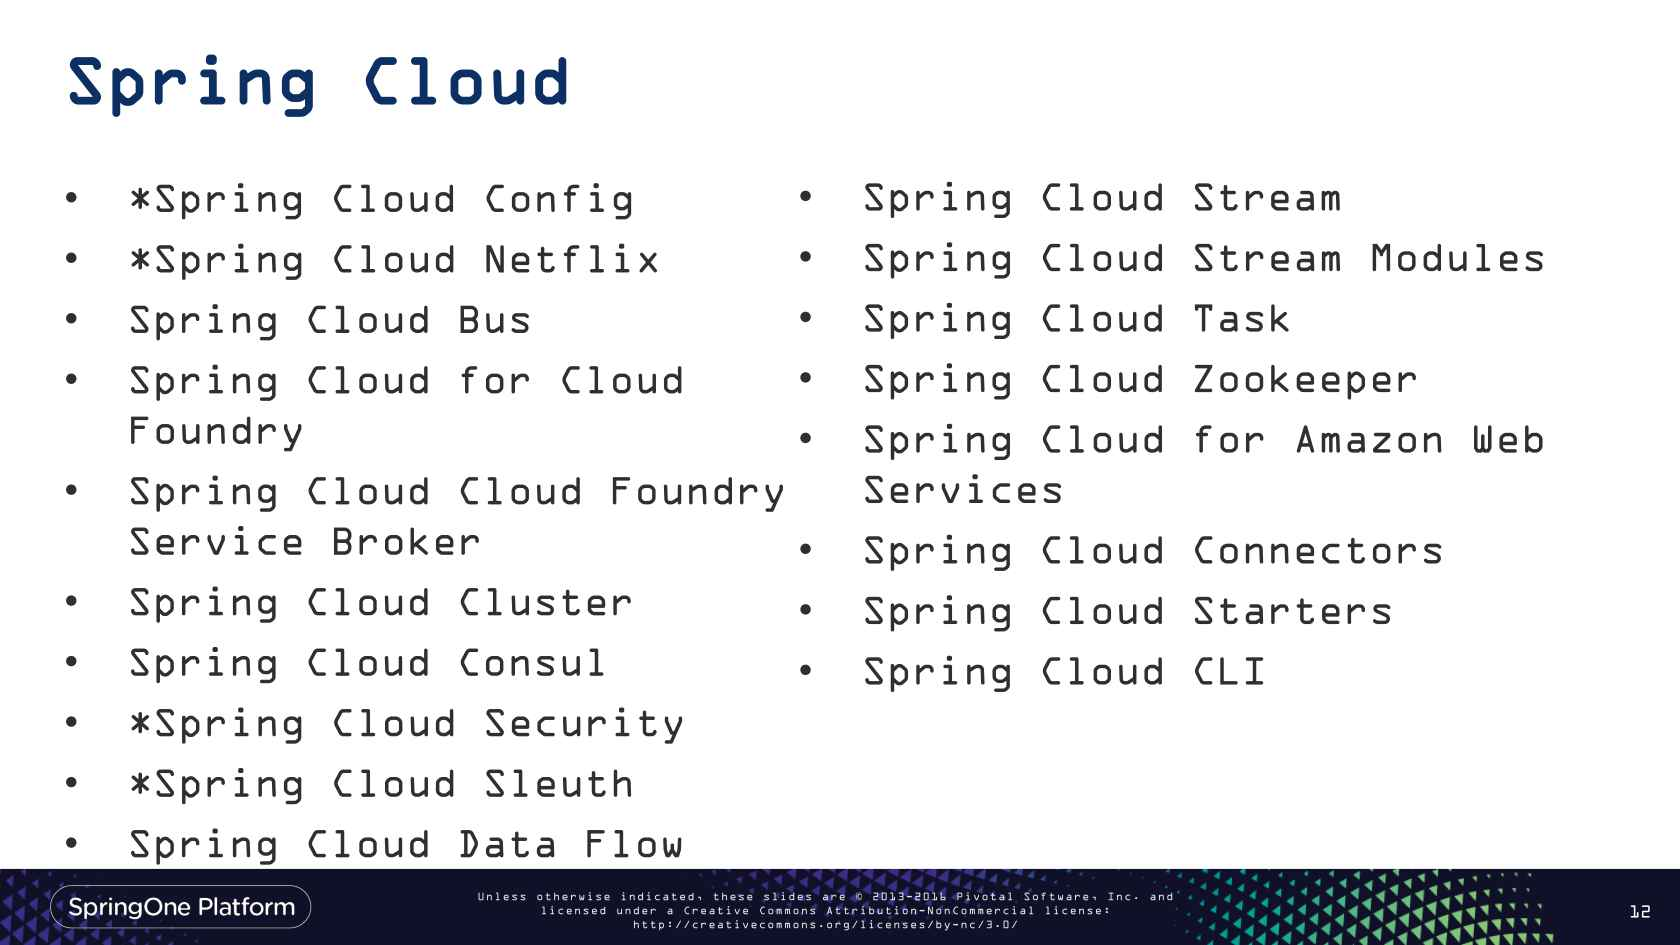 Operating a High Velocity Large Organization with Spring Cloud